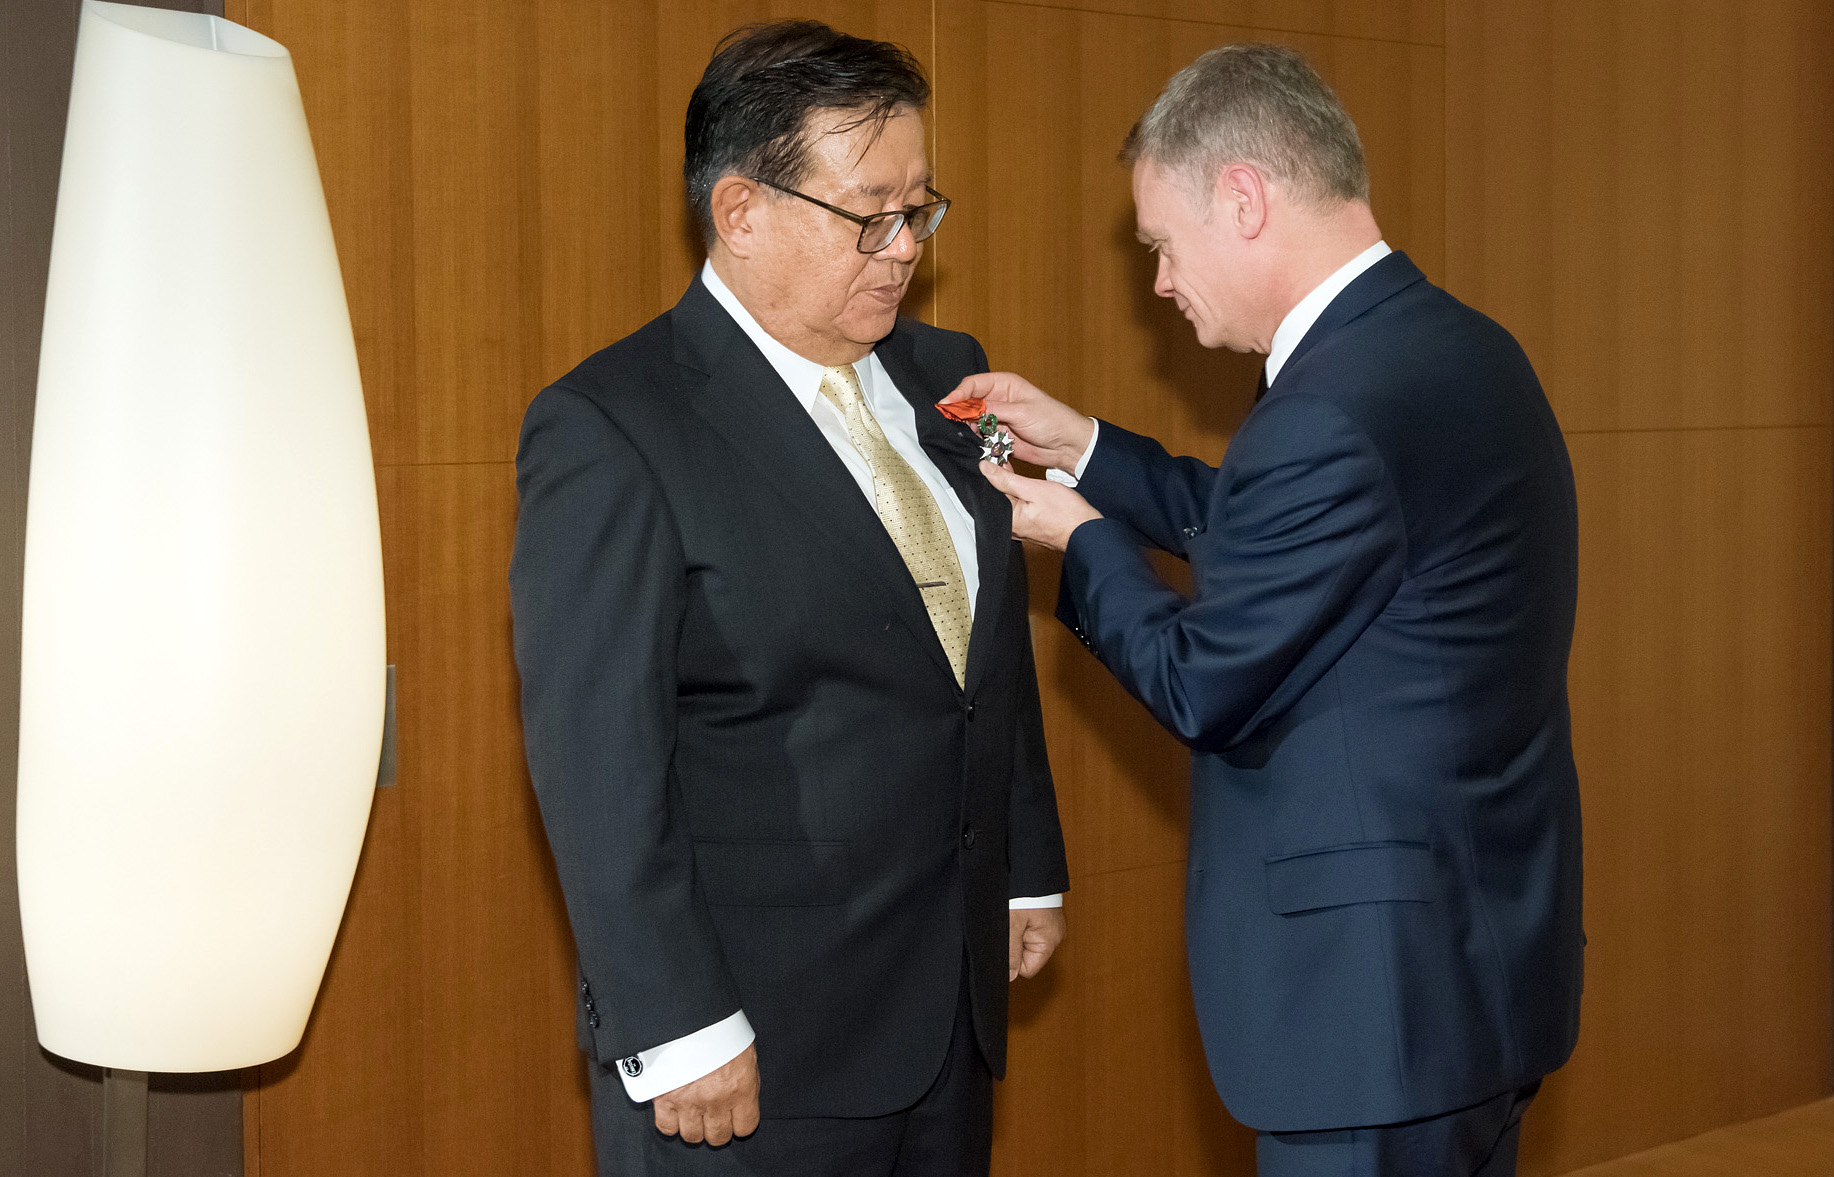 Laurent Pic decorating Jun Murai with the Knight of the Legion of Honour Medal